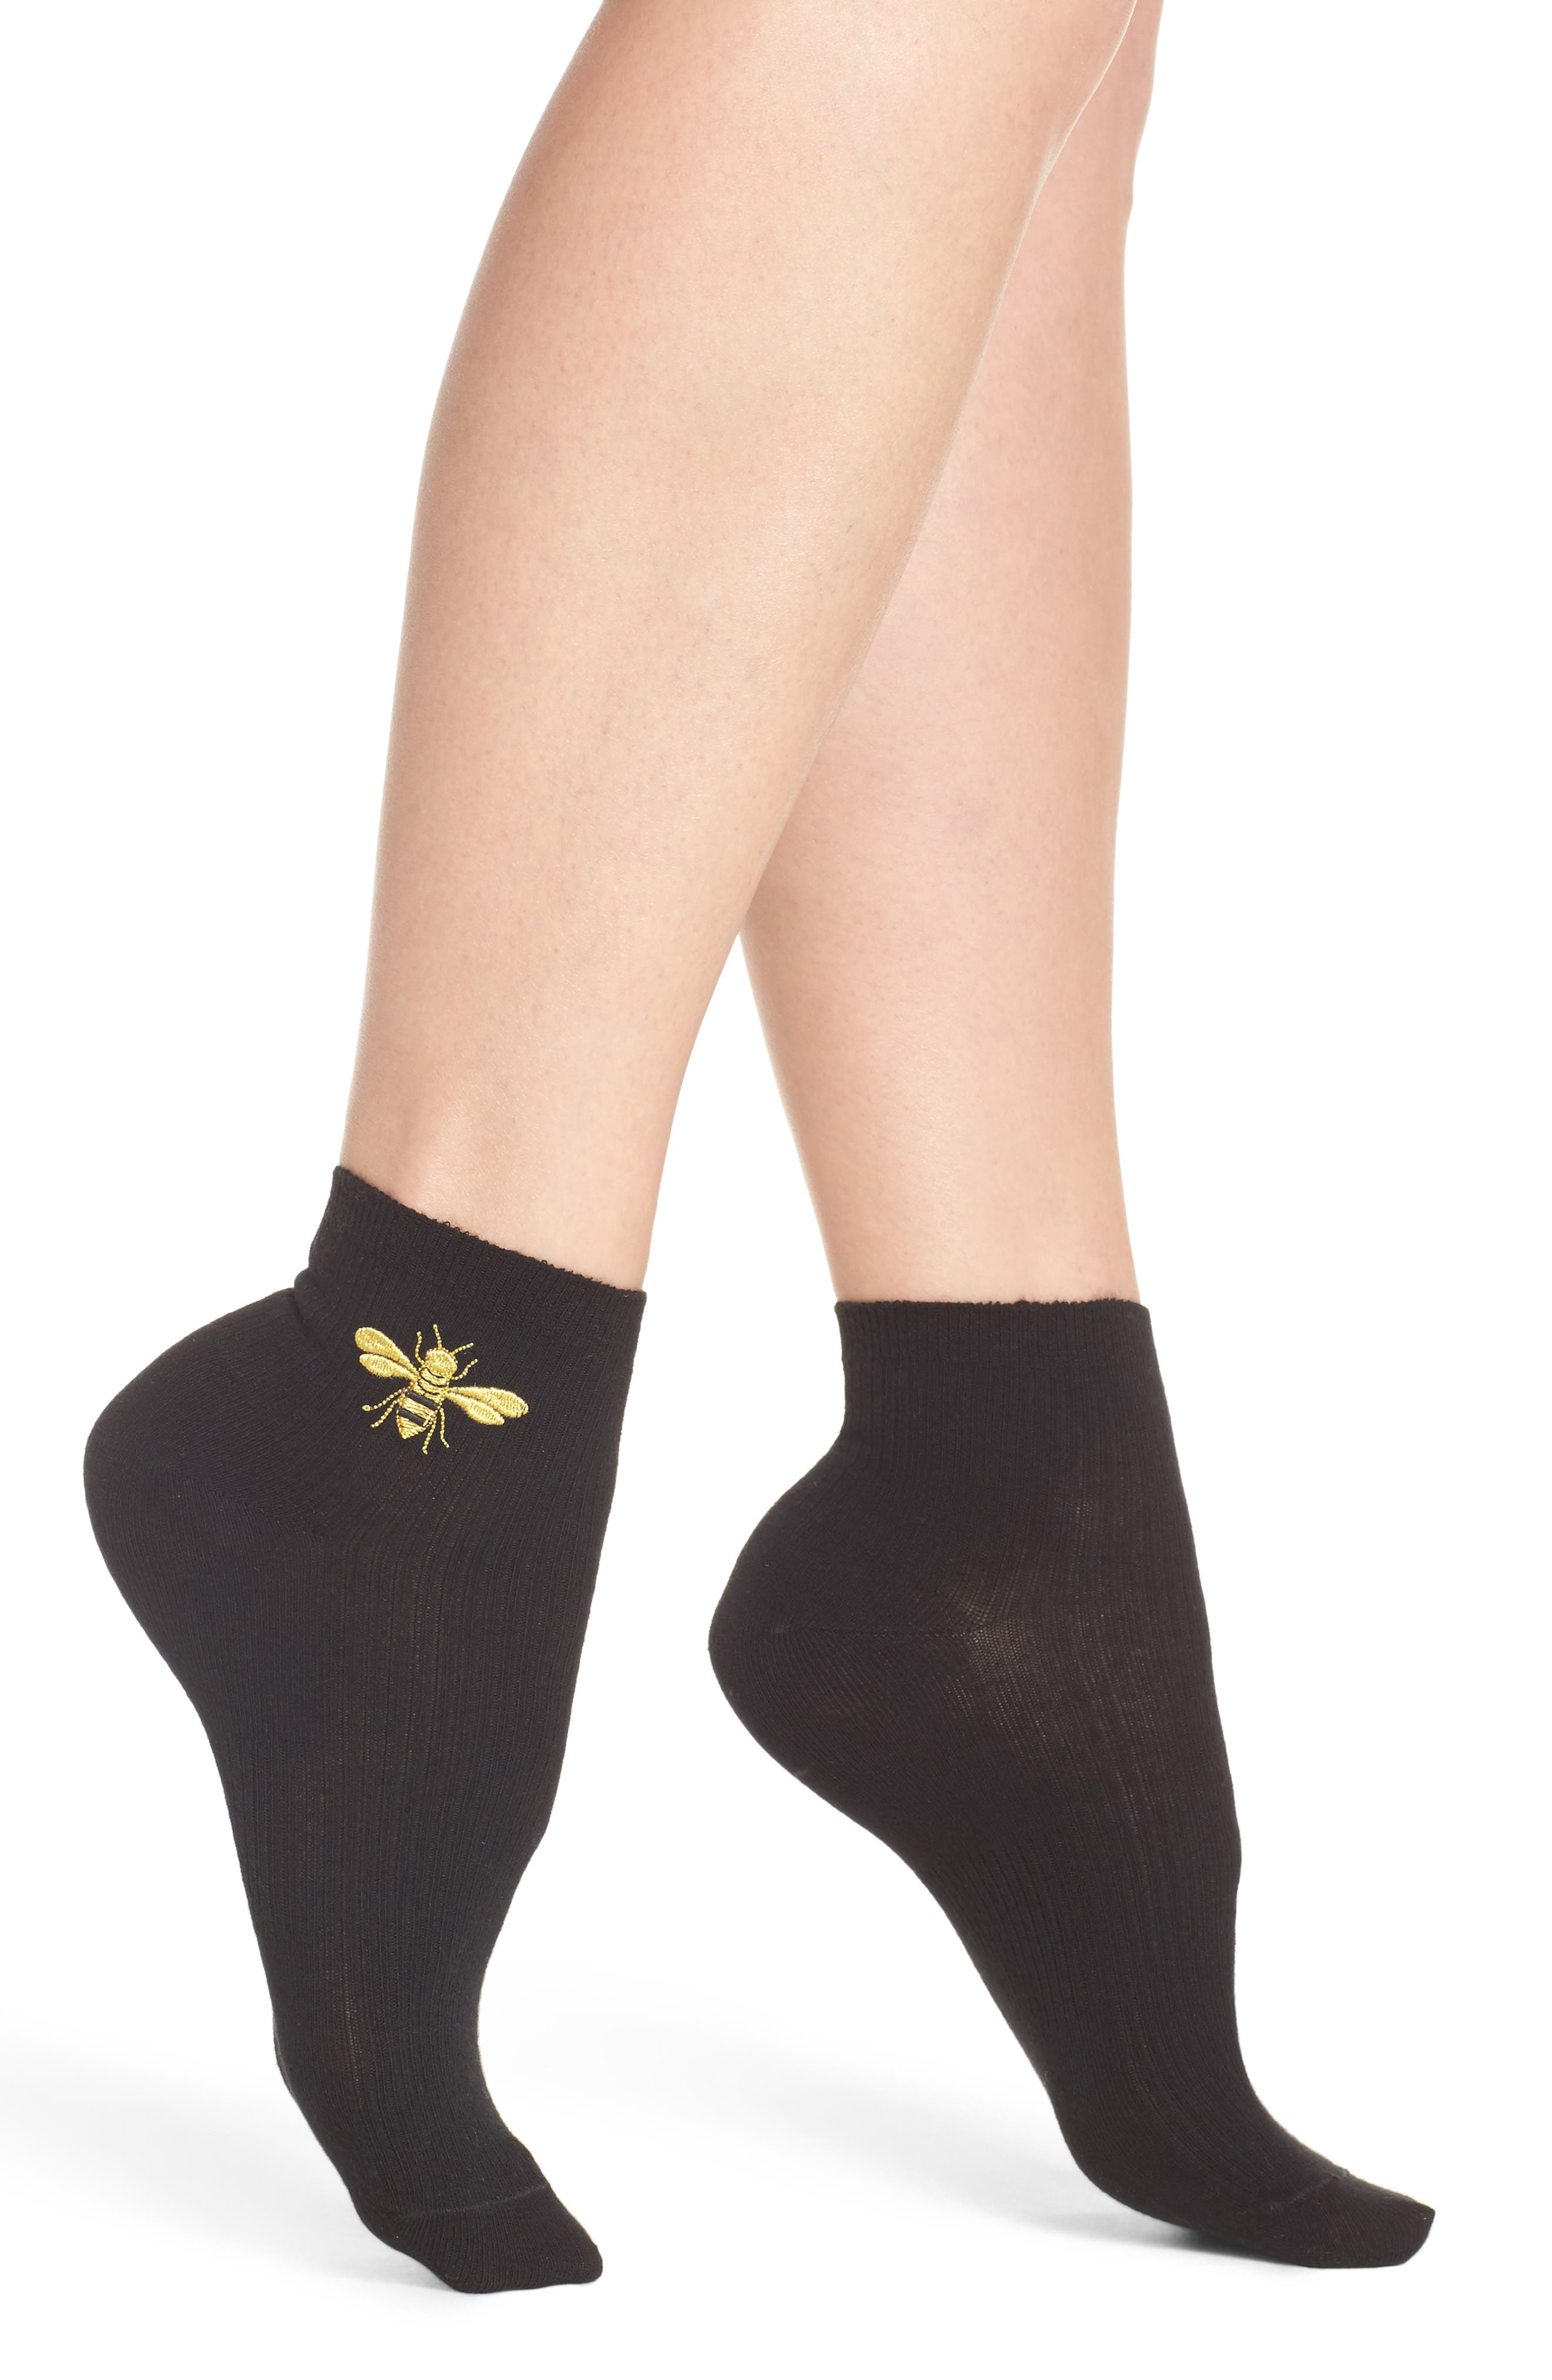 Embroidered Ankle Socks,                         Main,                         color, 001